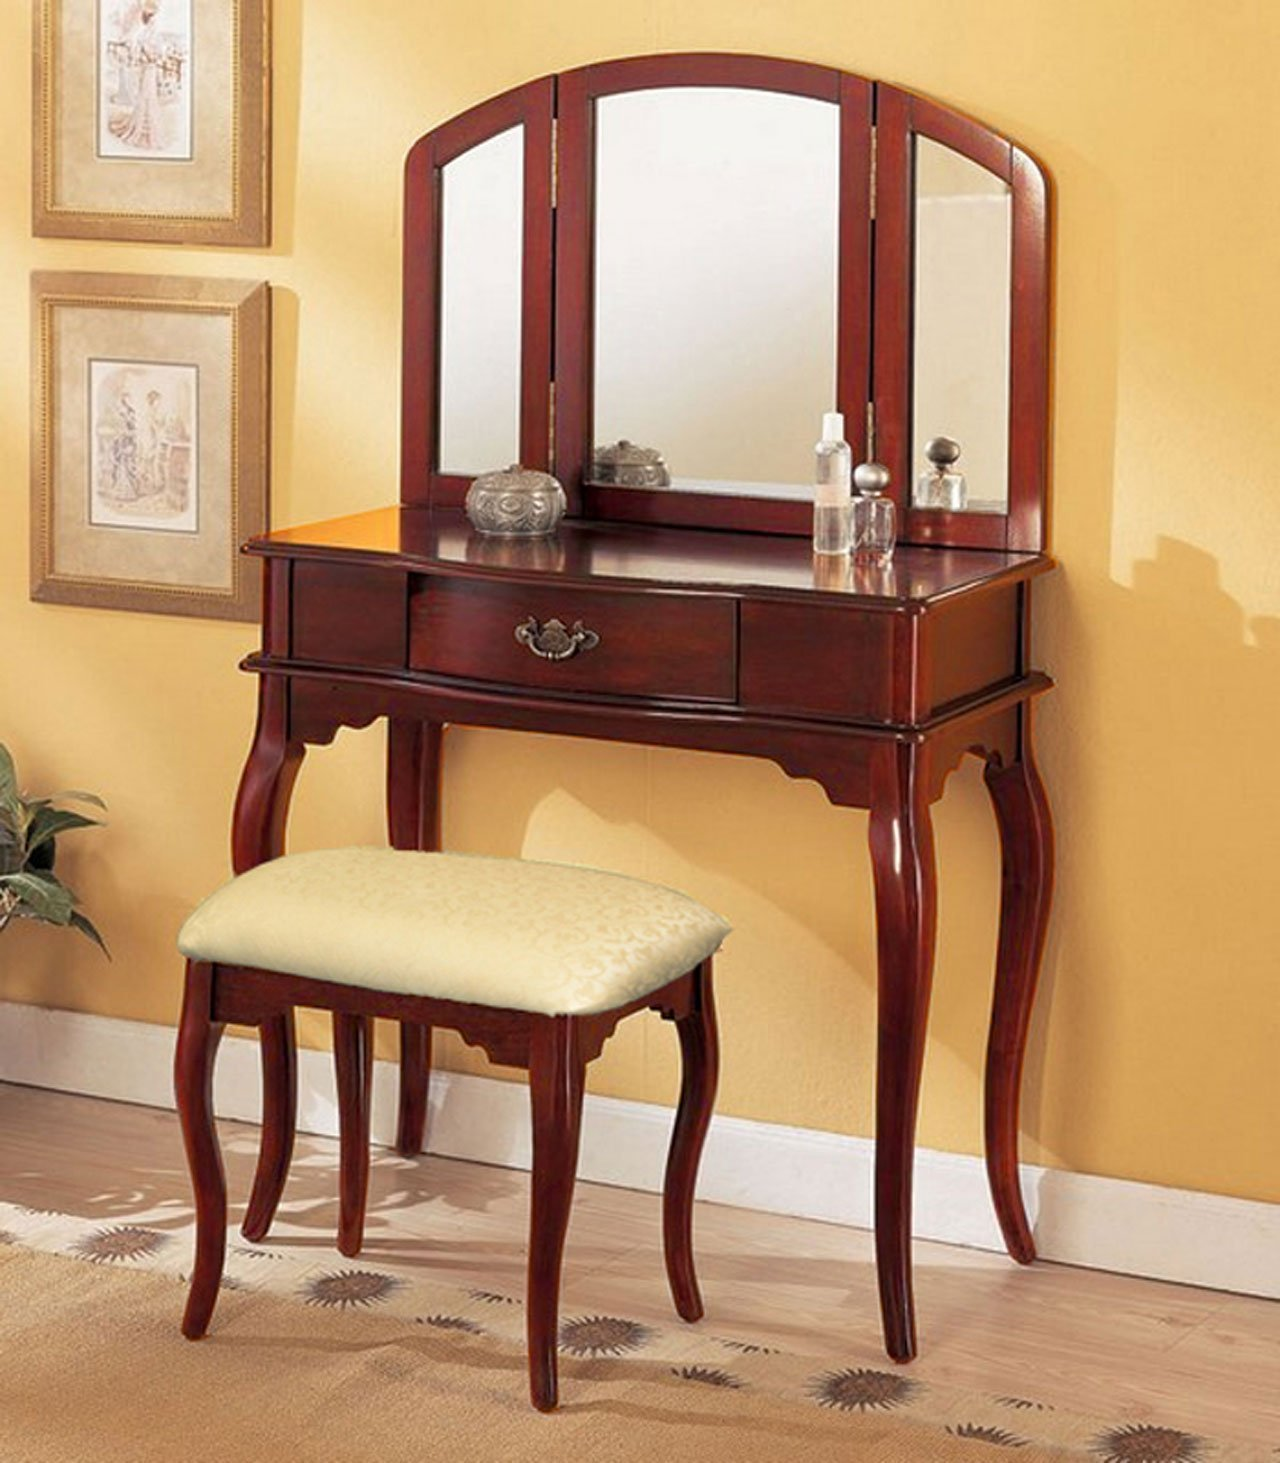 Mirrored Vanity Set for Elegant Bedroom Furniture Design: Vanity Mirror With Chair | Mirrored Vanity Set | Bedroom Vanity Table With Drawers